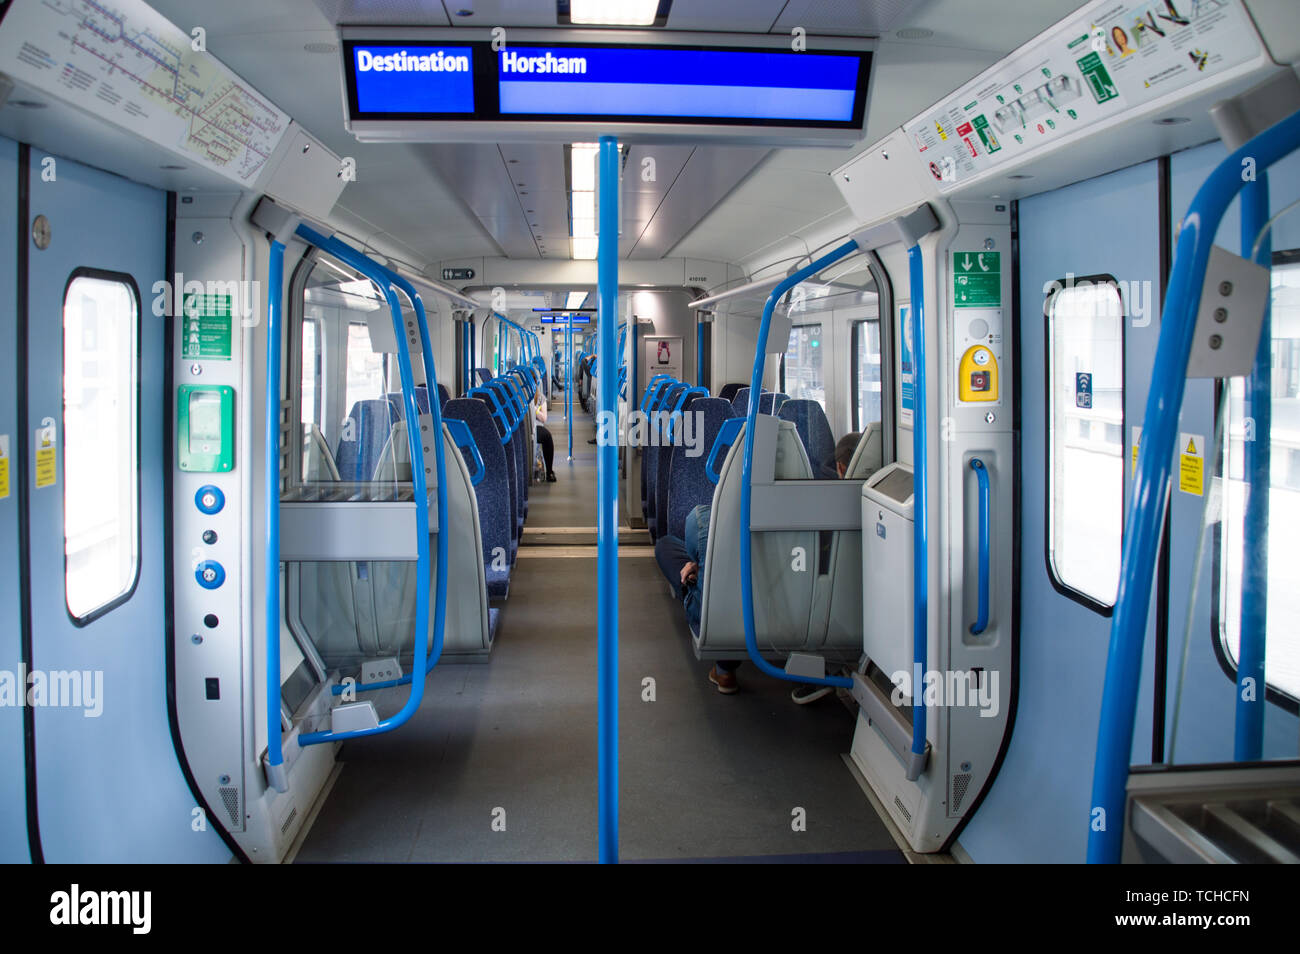 A near empty Thameslink coach in a service from London Bridge to Horsham on a weekend - Stock Image